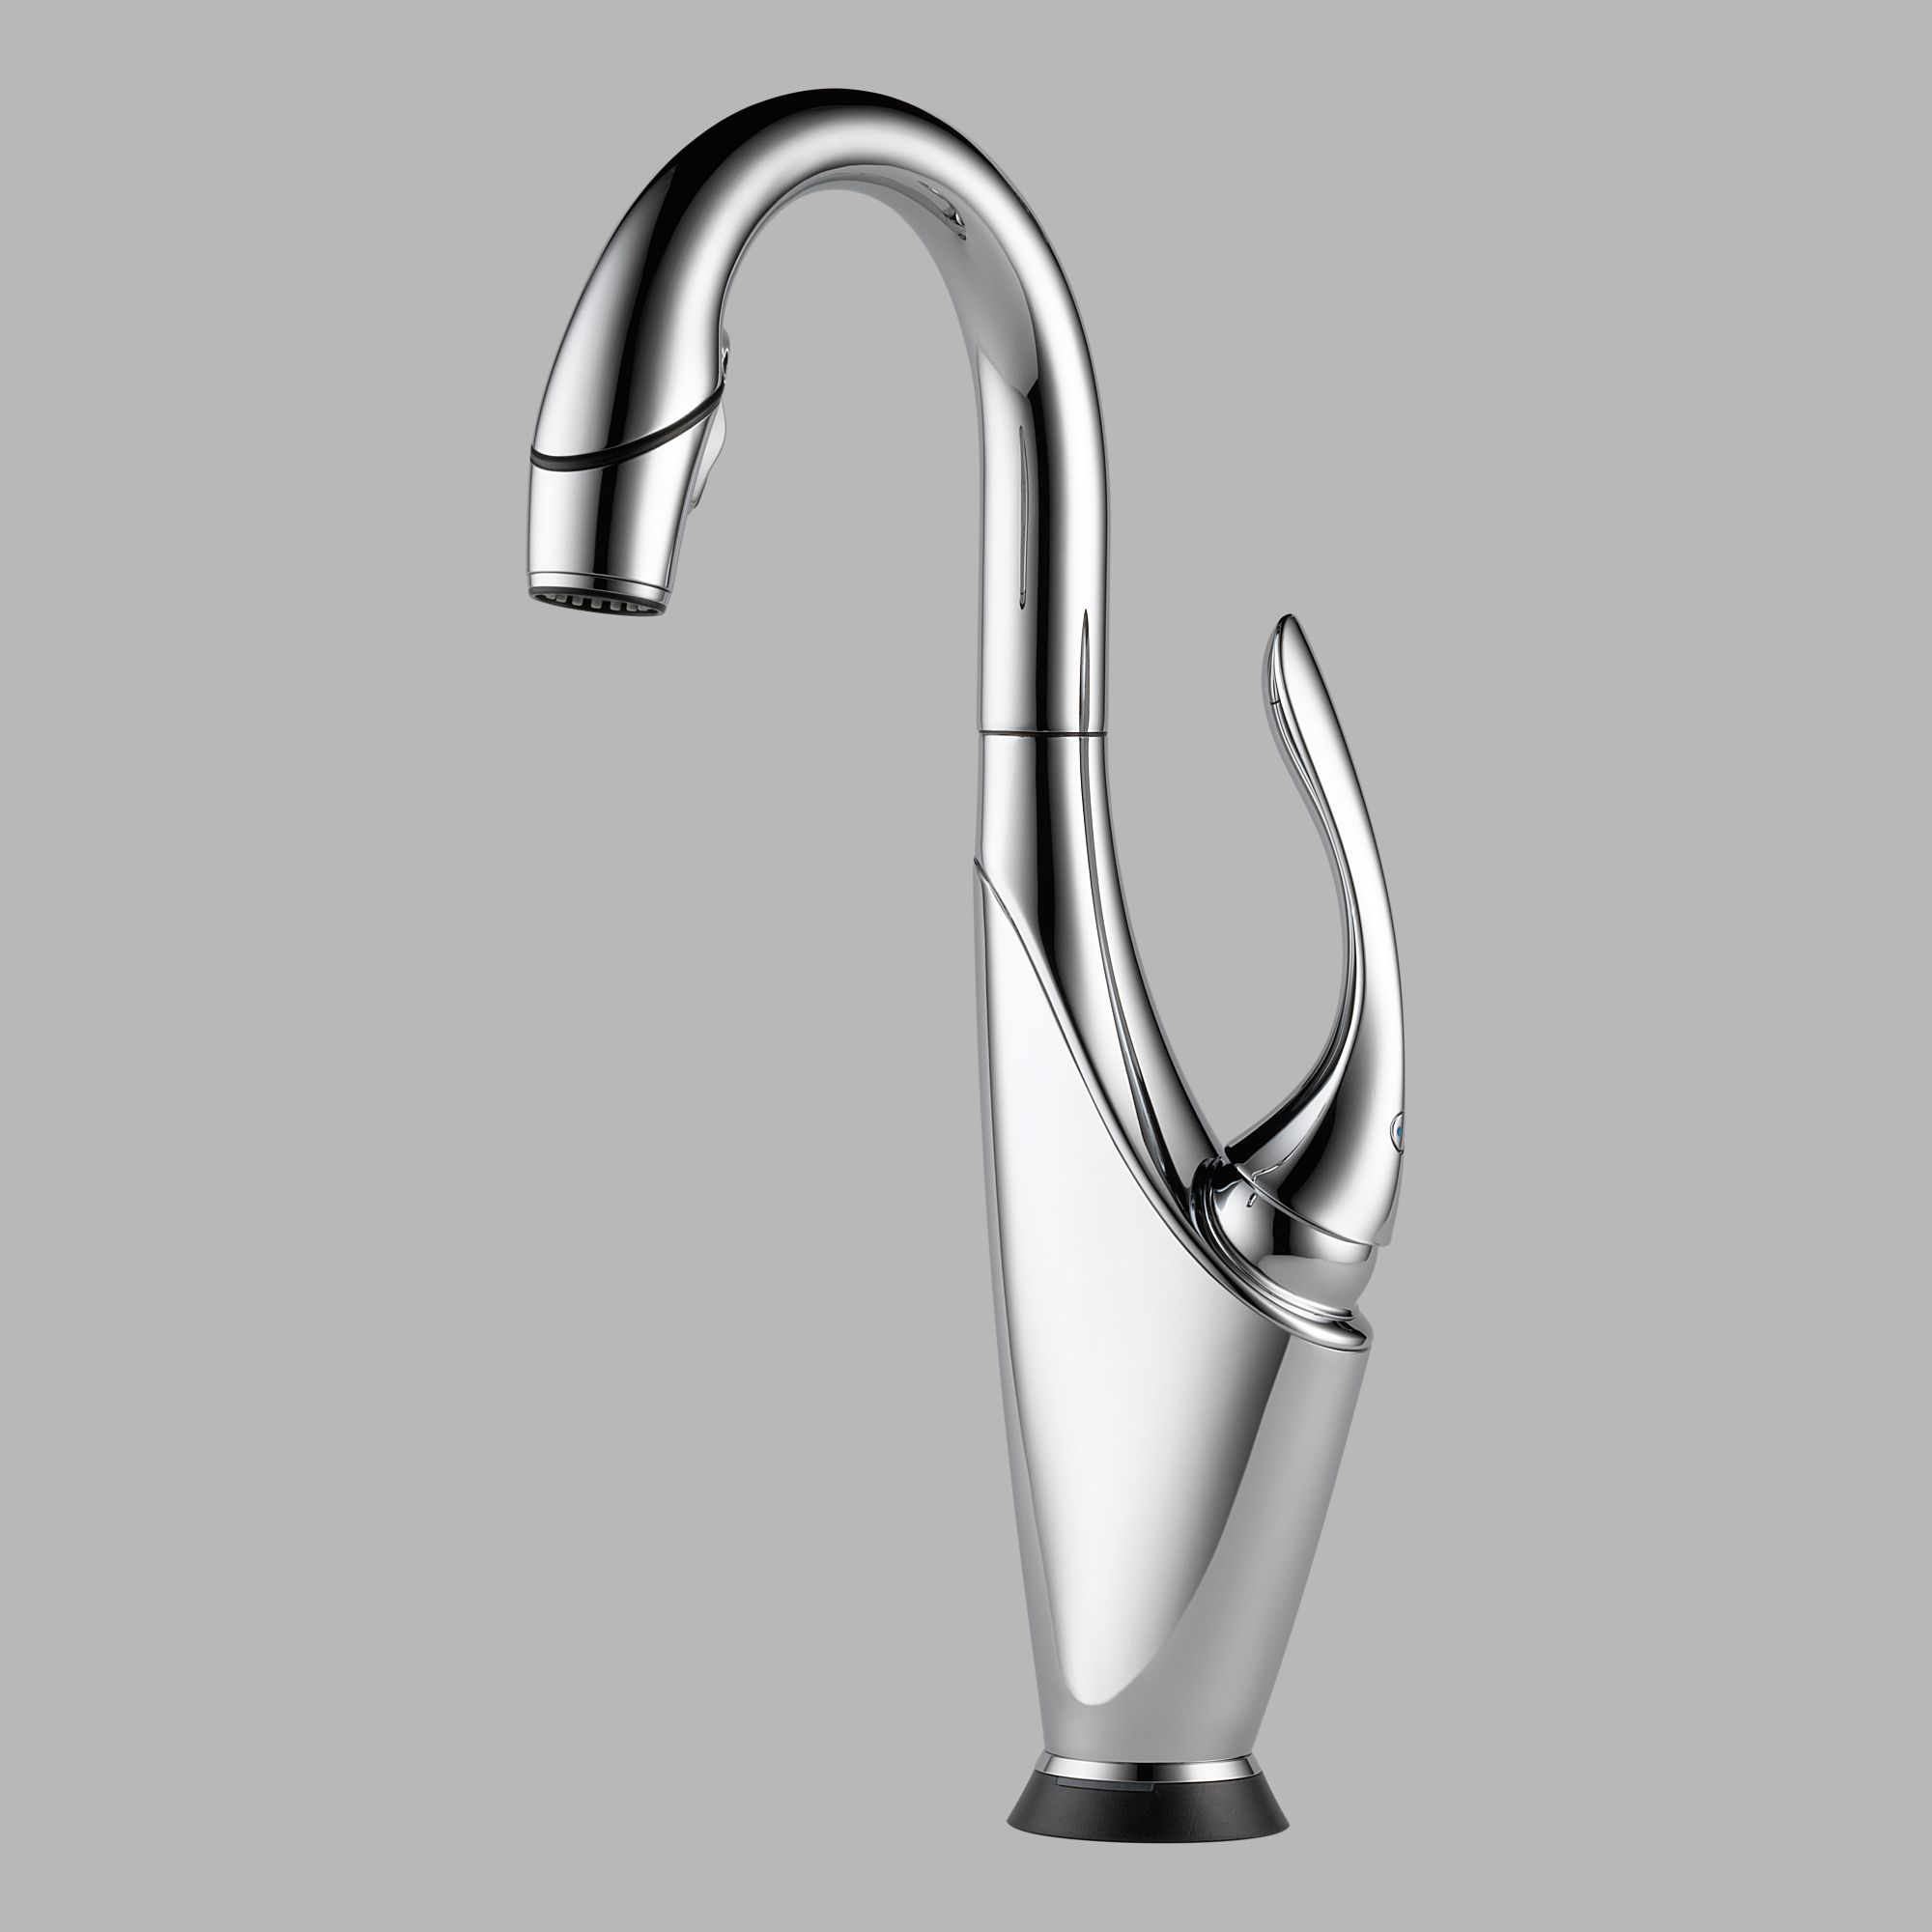 64955 Brizo Vuelo Single Handle Bar/Prep Faucet with Smarttouch(